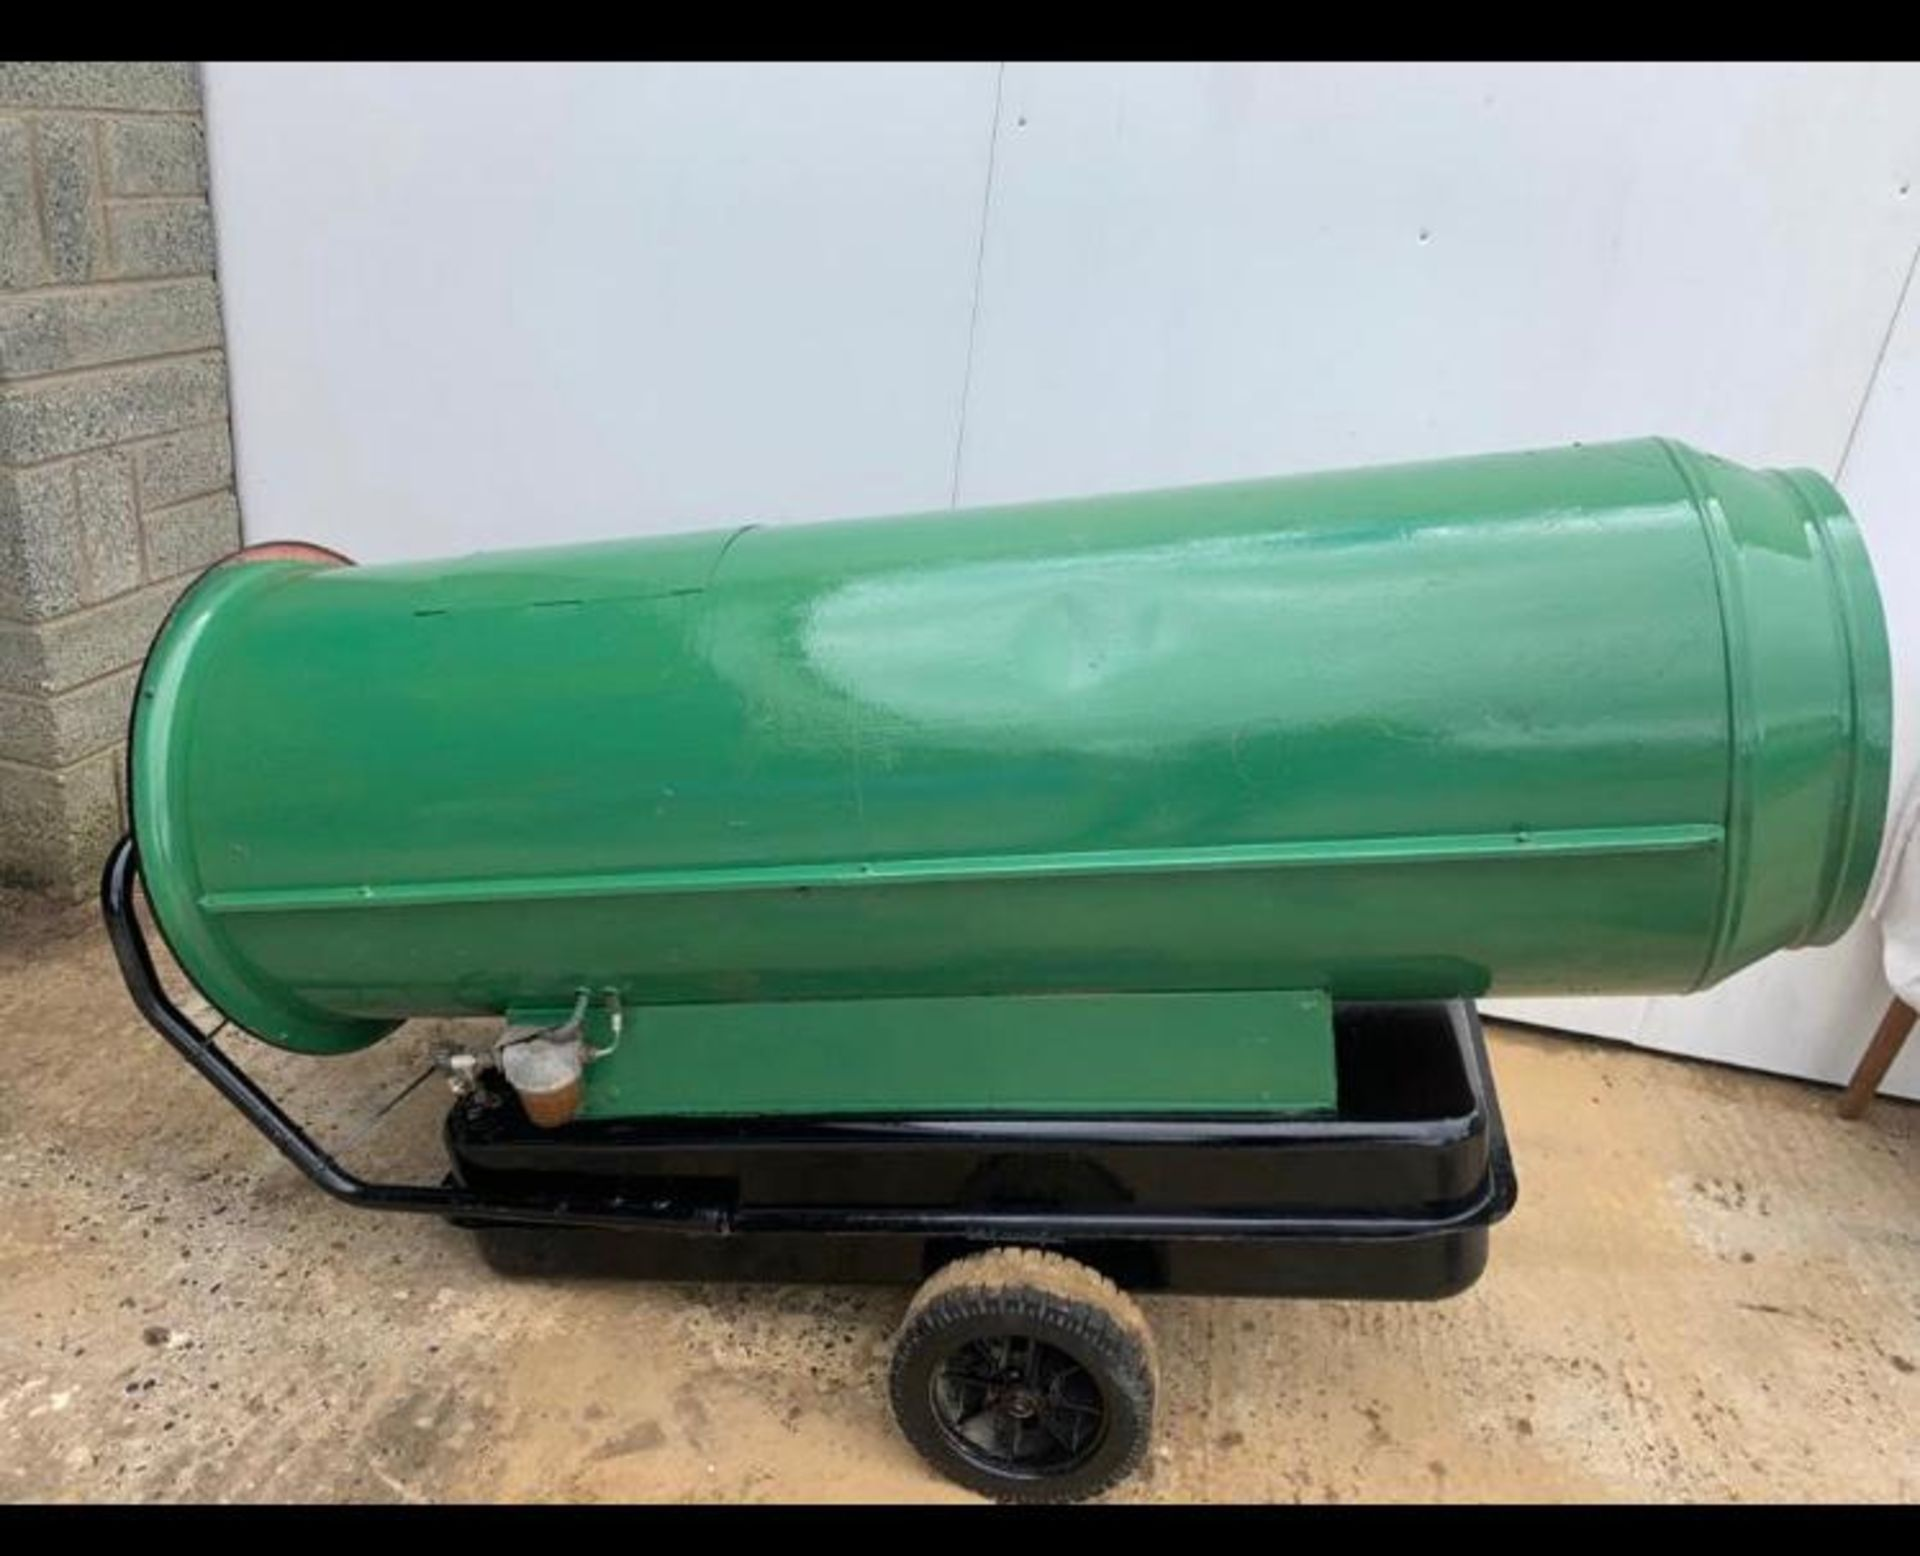 Diesel space heater delivery £120 anywhere uk *PLUS VAT* - Image 2 of 4